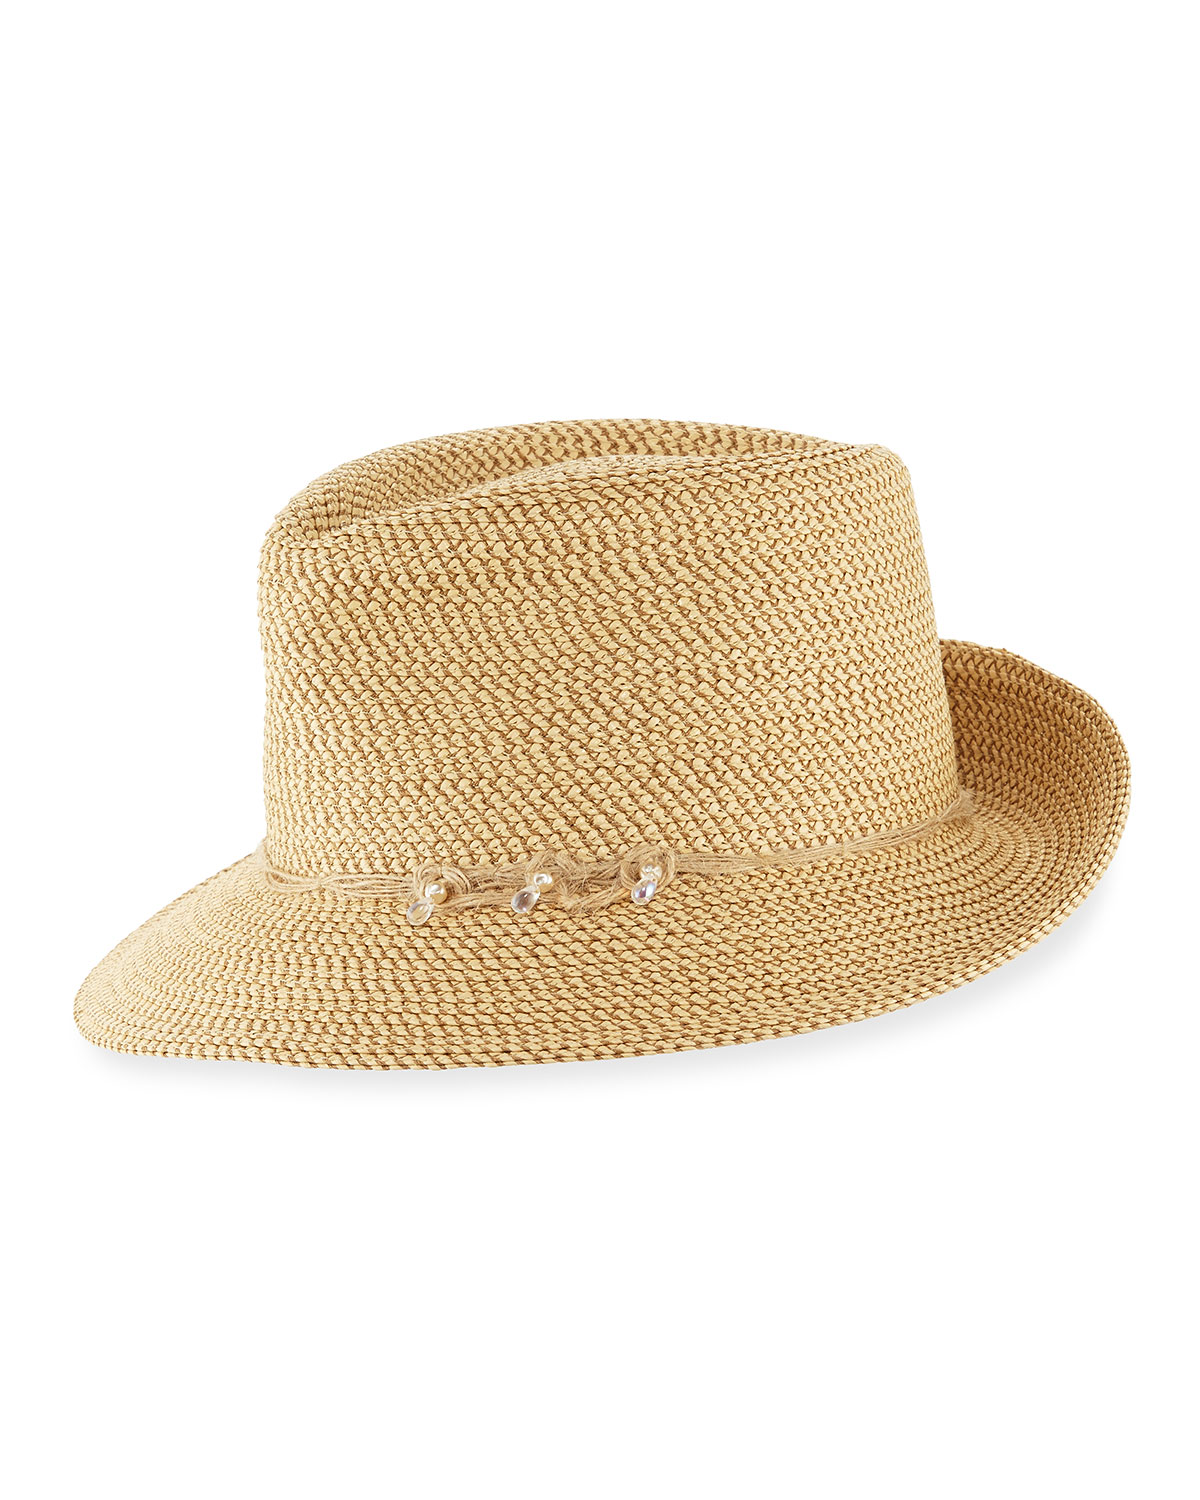 16572fce85a Eric Javits Mustique Squishee Packable Sun Fedora Hat